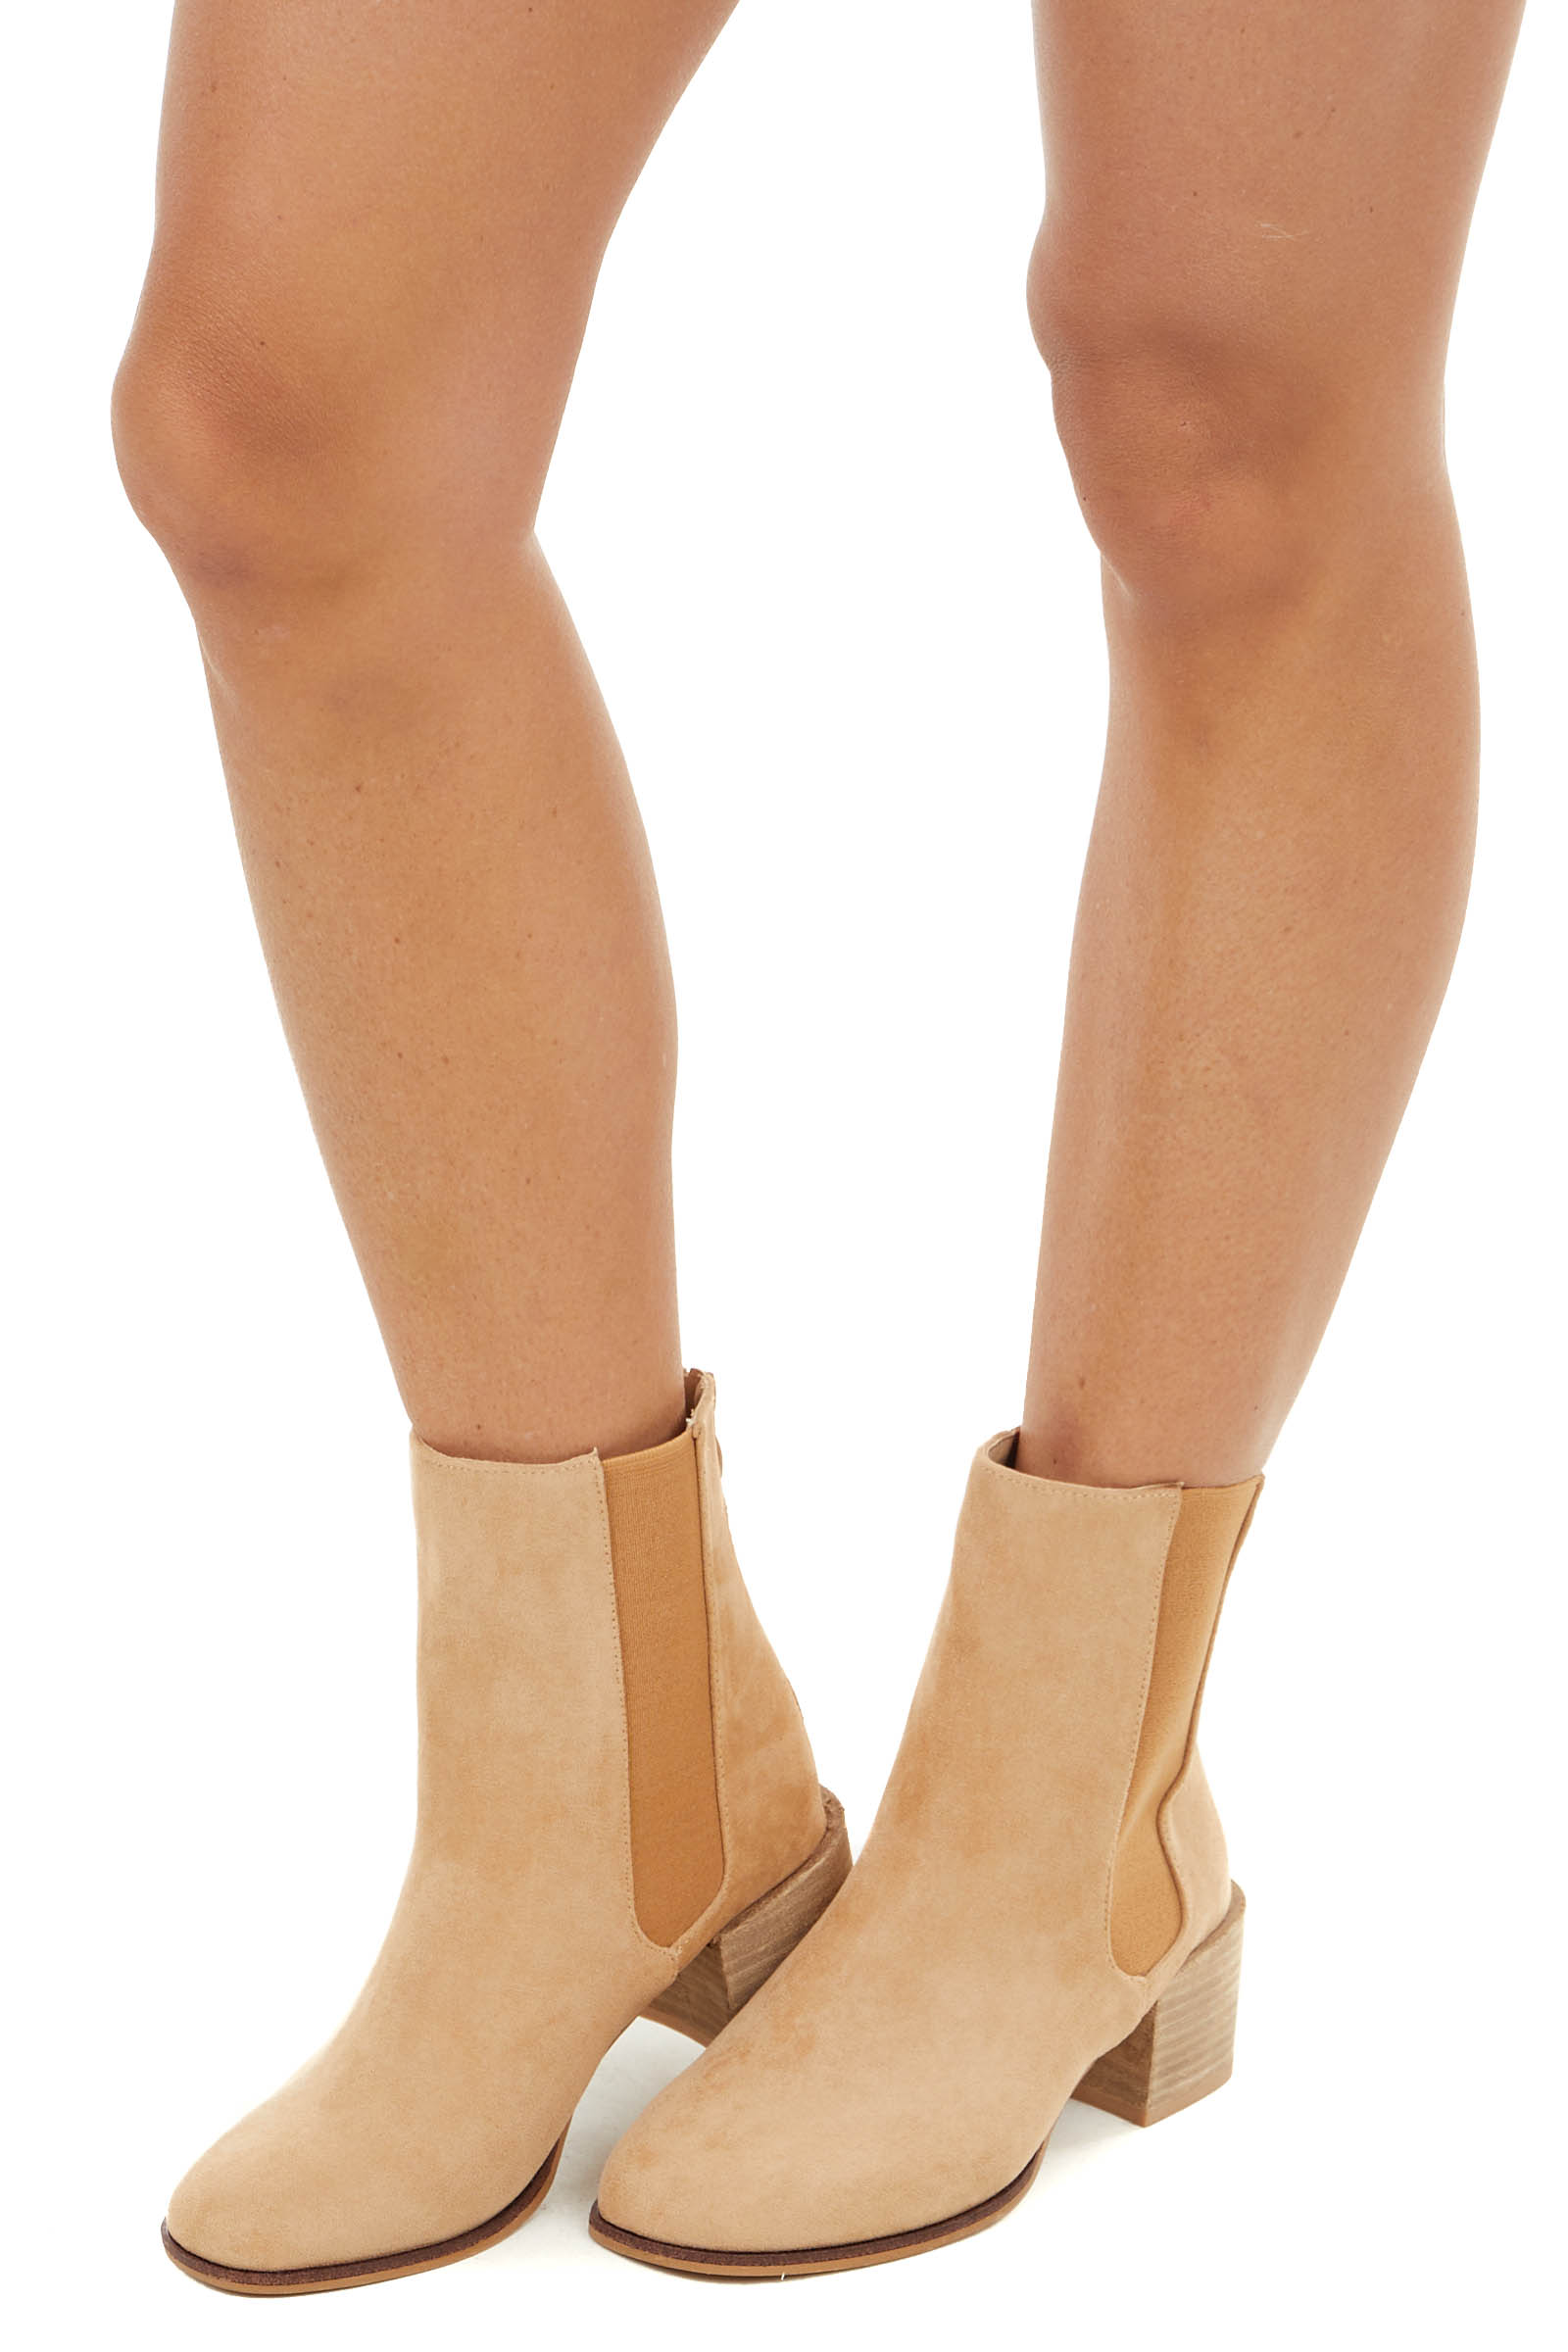 Beige High Top Bootie with Block Heel with Rounded Toe